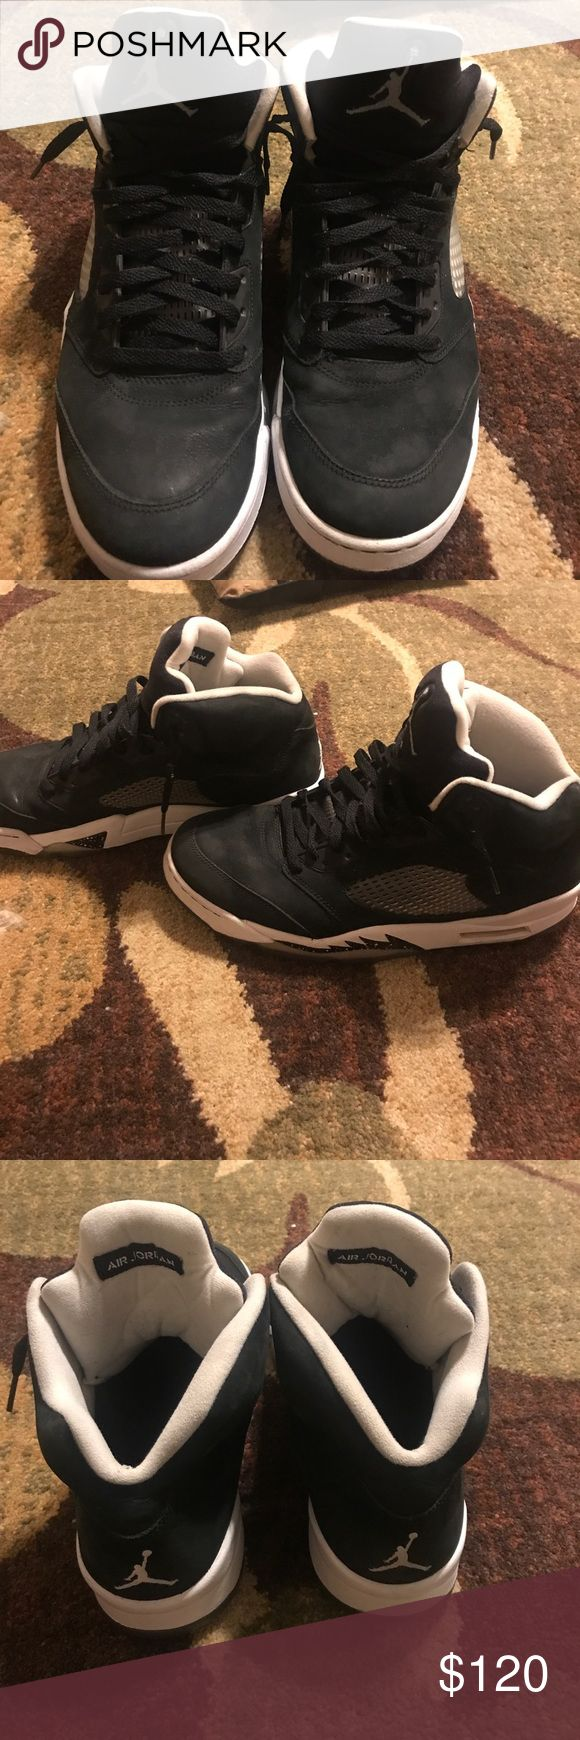 Jordan Oreo 5's Jordan Oreo 5 Shoes . Size 11. Barely worn! NO TRADES! These are my son's and he wants to buy other shoes. One owner . No Smoking Home. Firm on price! Air Jordan Shoes Sneakers